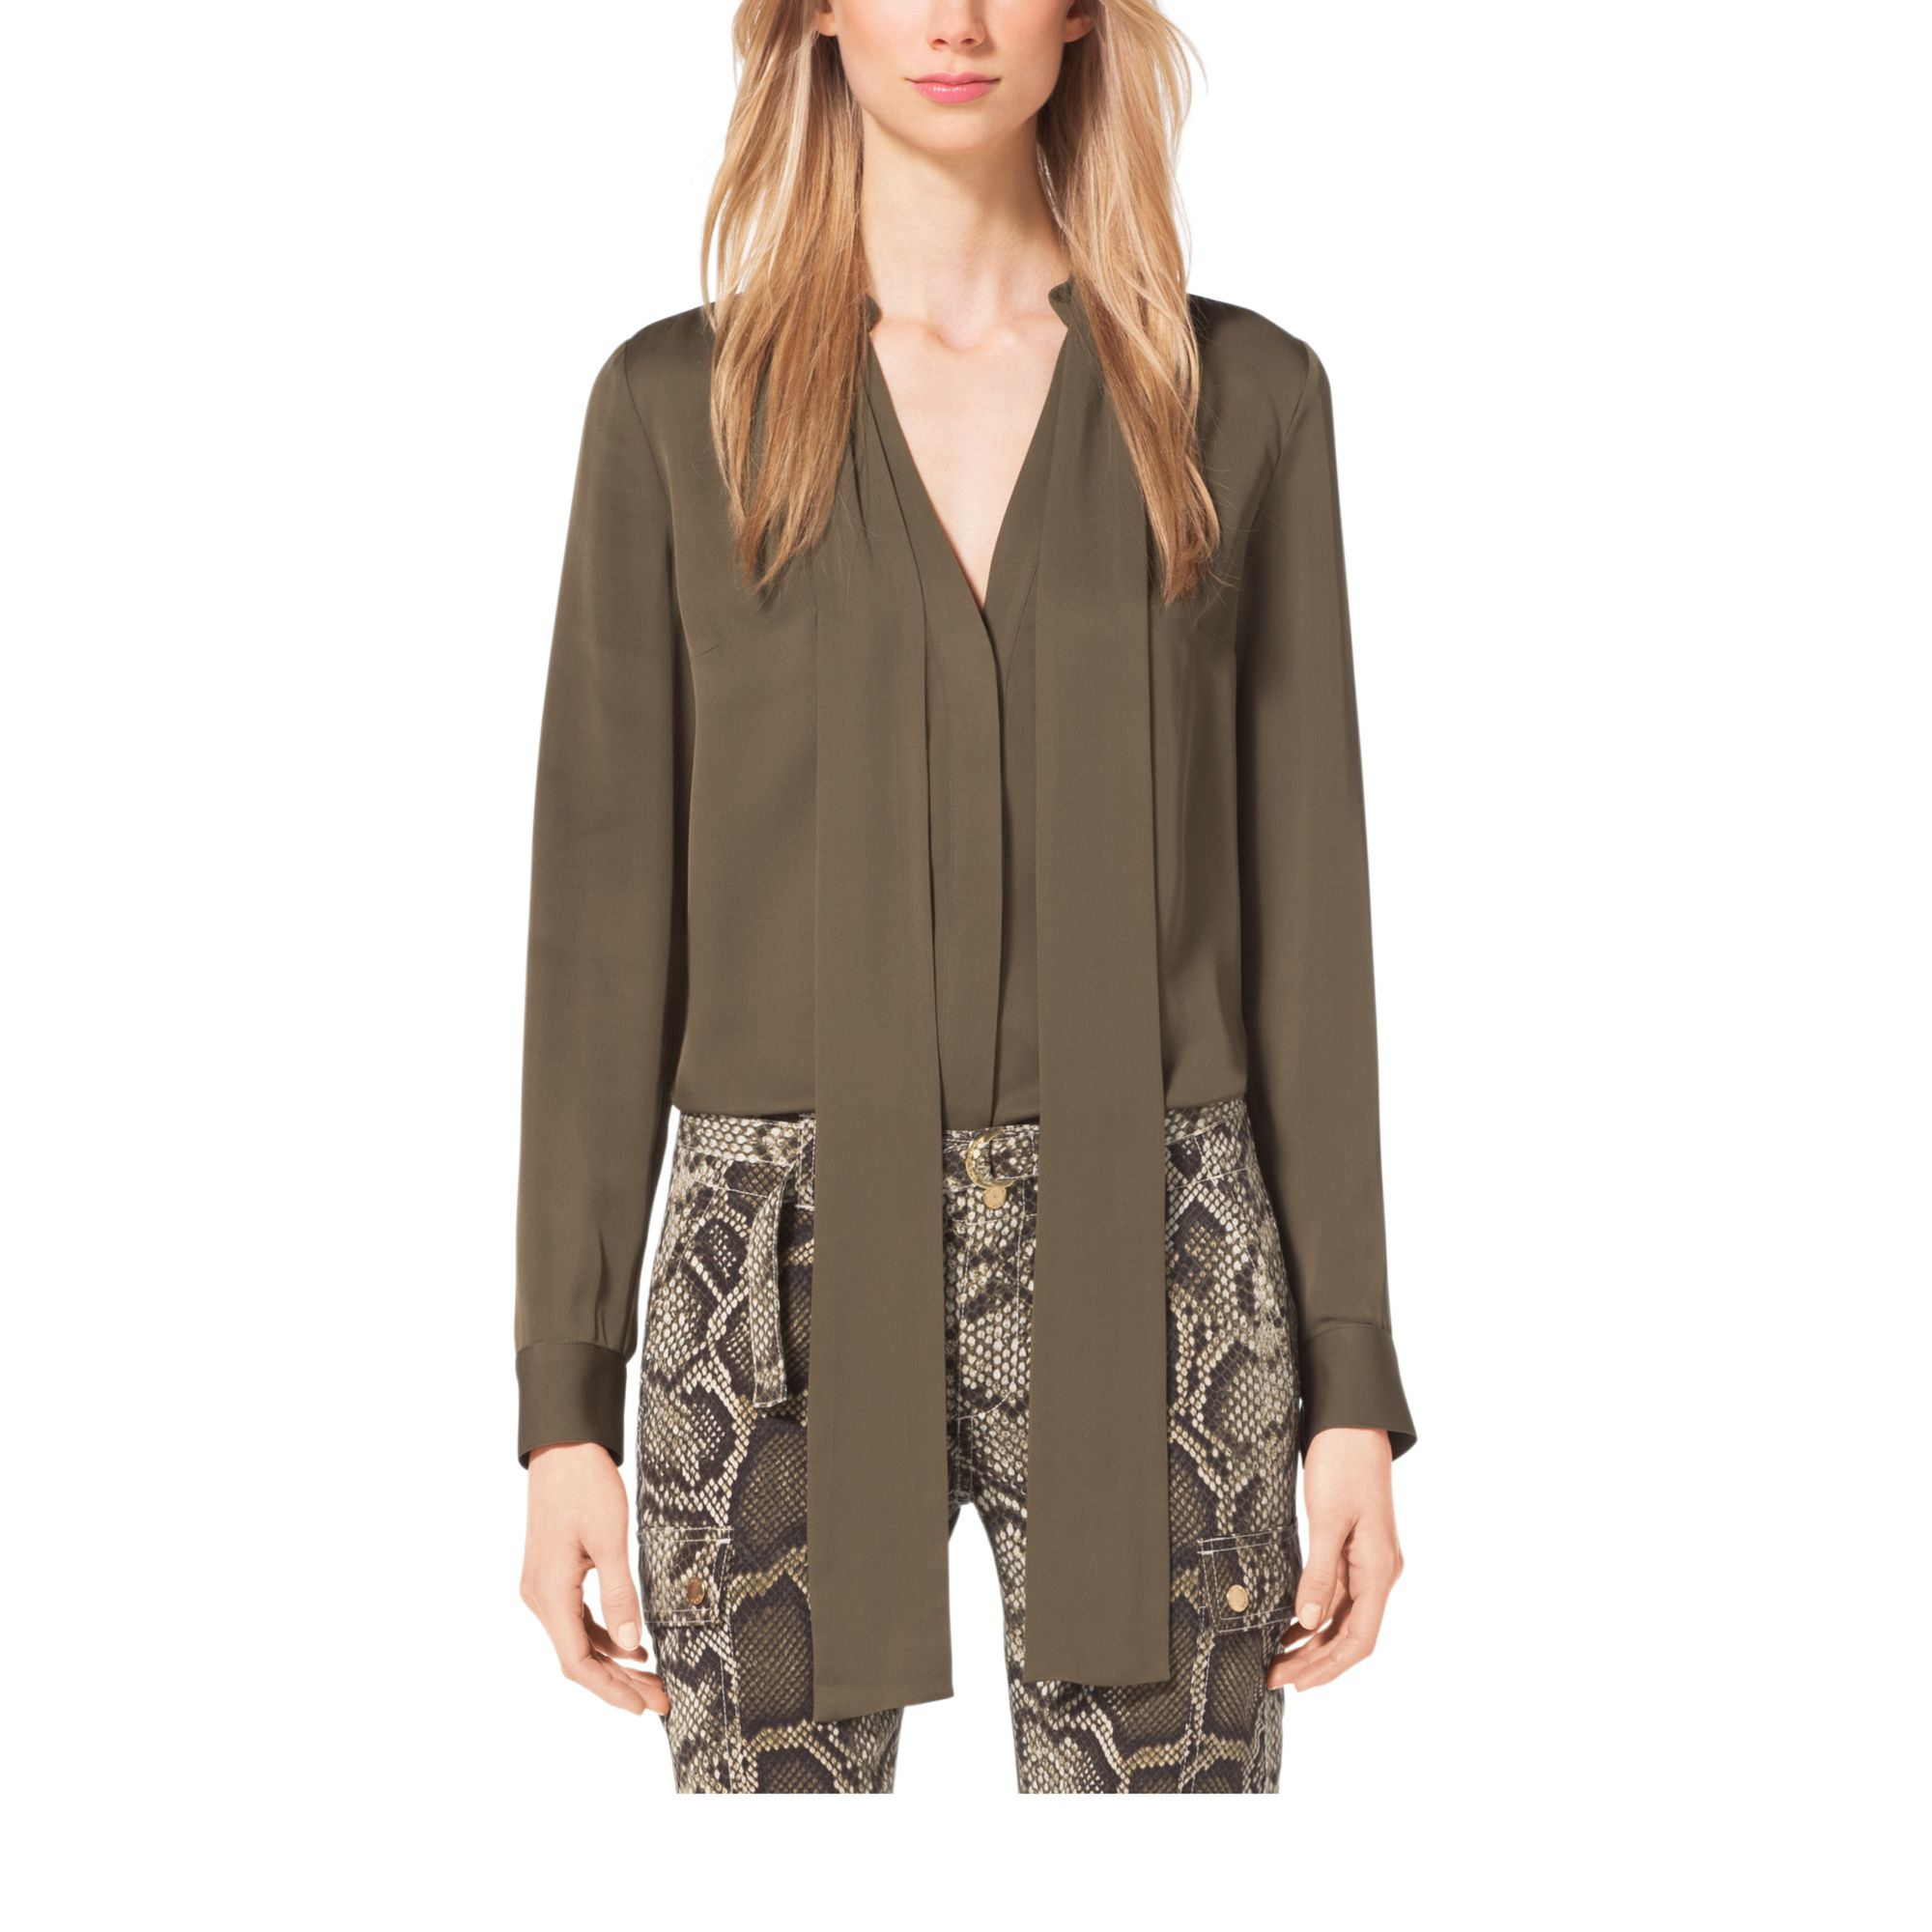 Lyst - Michael Kors Tie-neck Silk Blouse in Green e590005f4a837